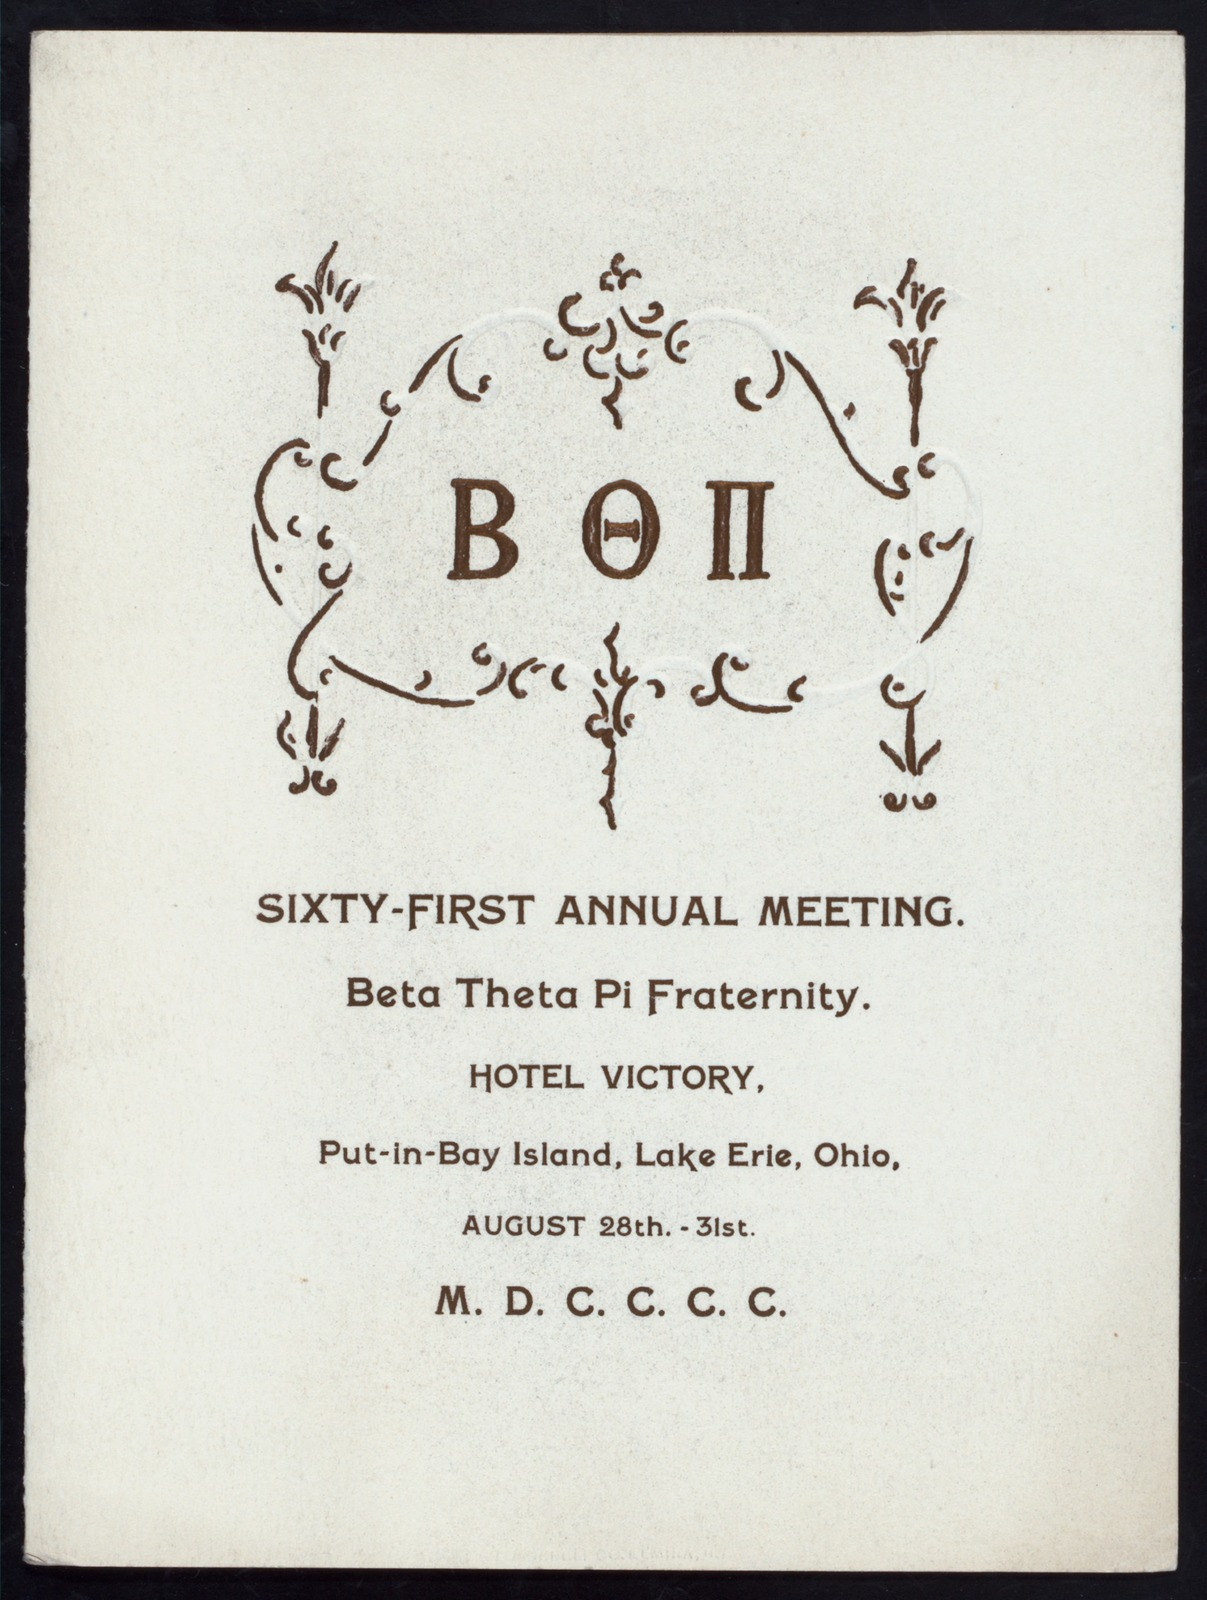 """SIXTY-FIRST ANNUAL MEETING [held by] BETA THETA PI FRATERNITY [at] """"HOTEL VICTORY; PUT-IN-BAY ISLAND, LAKE ERIE, OH"""" (HOTEL;)"""